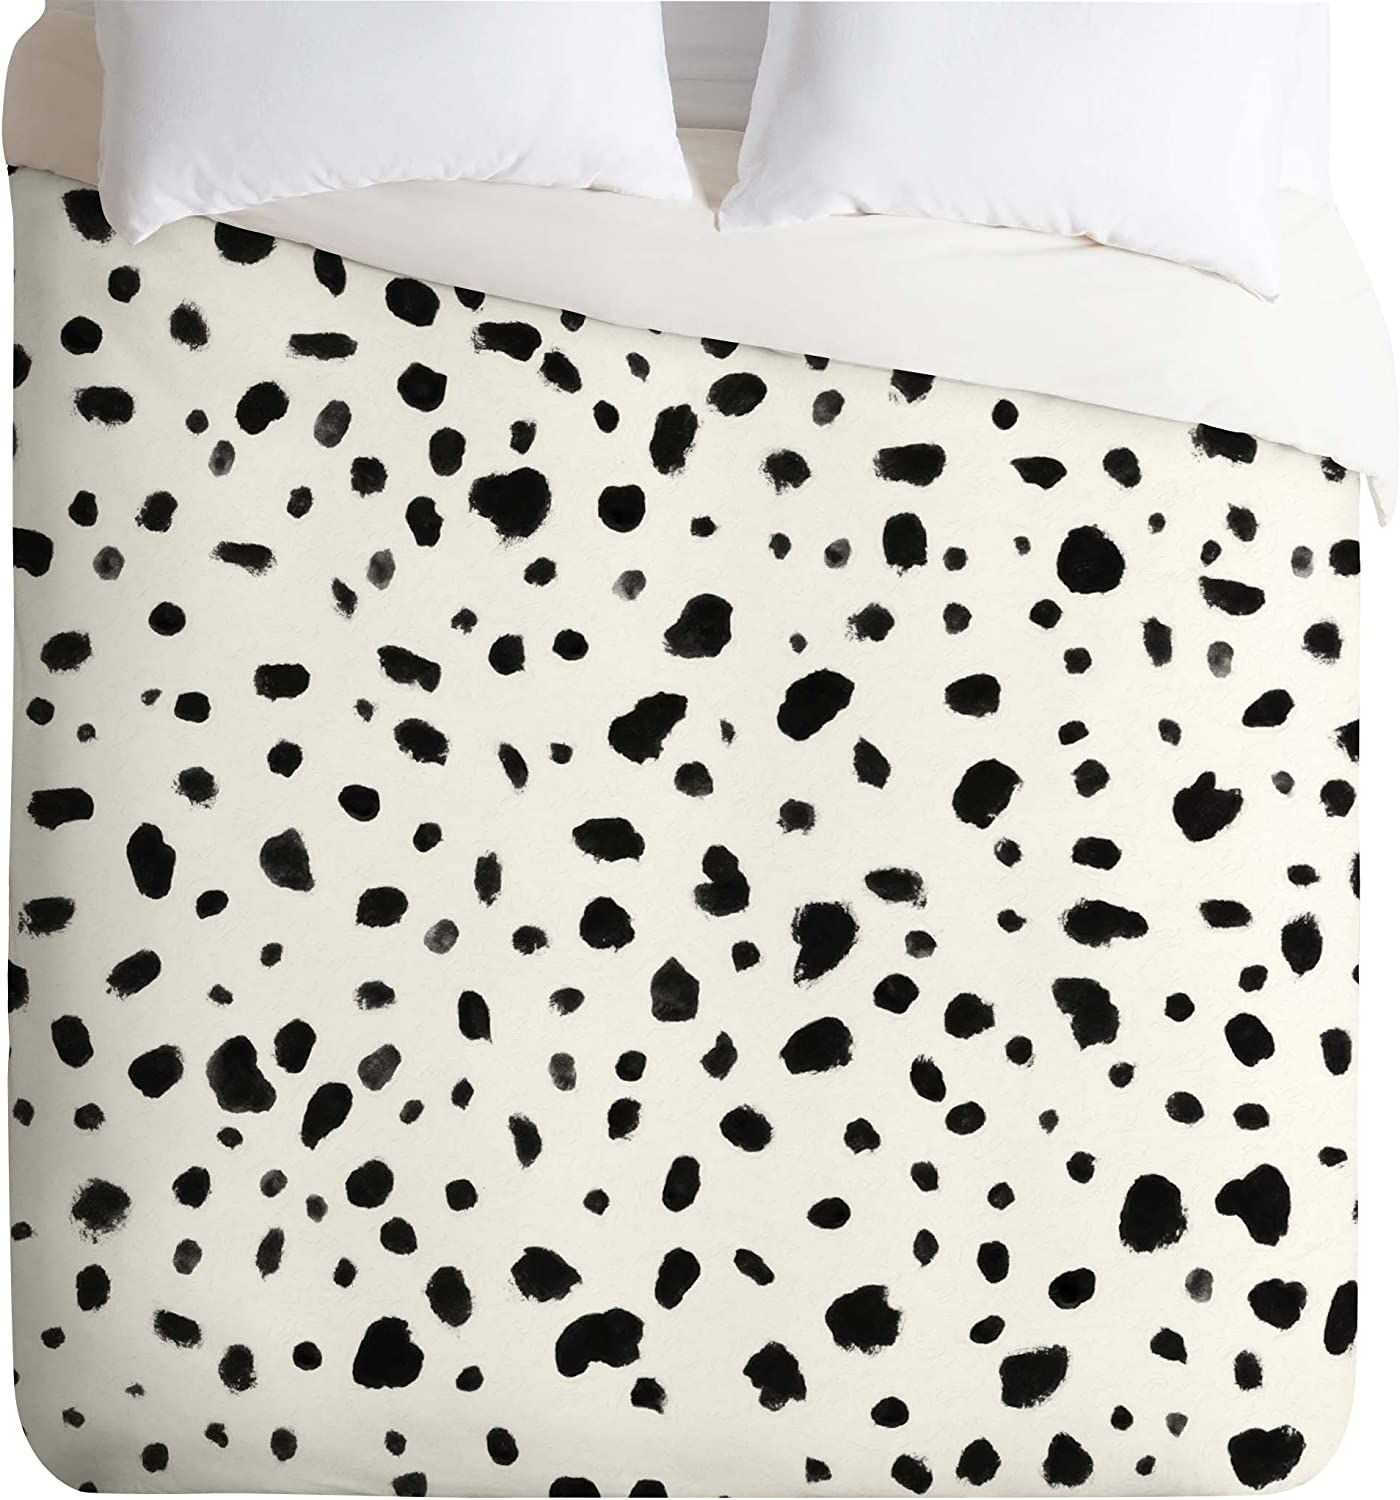 Deny Designs Rebecca Allen Miss Dalmatian Safety and trust Cover K Monroes Sales of SALE items from new works Duvet